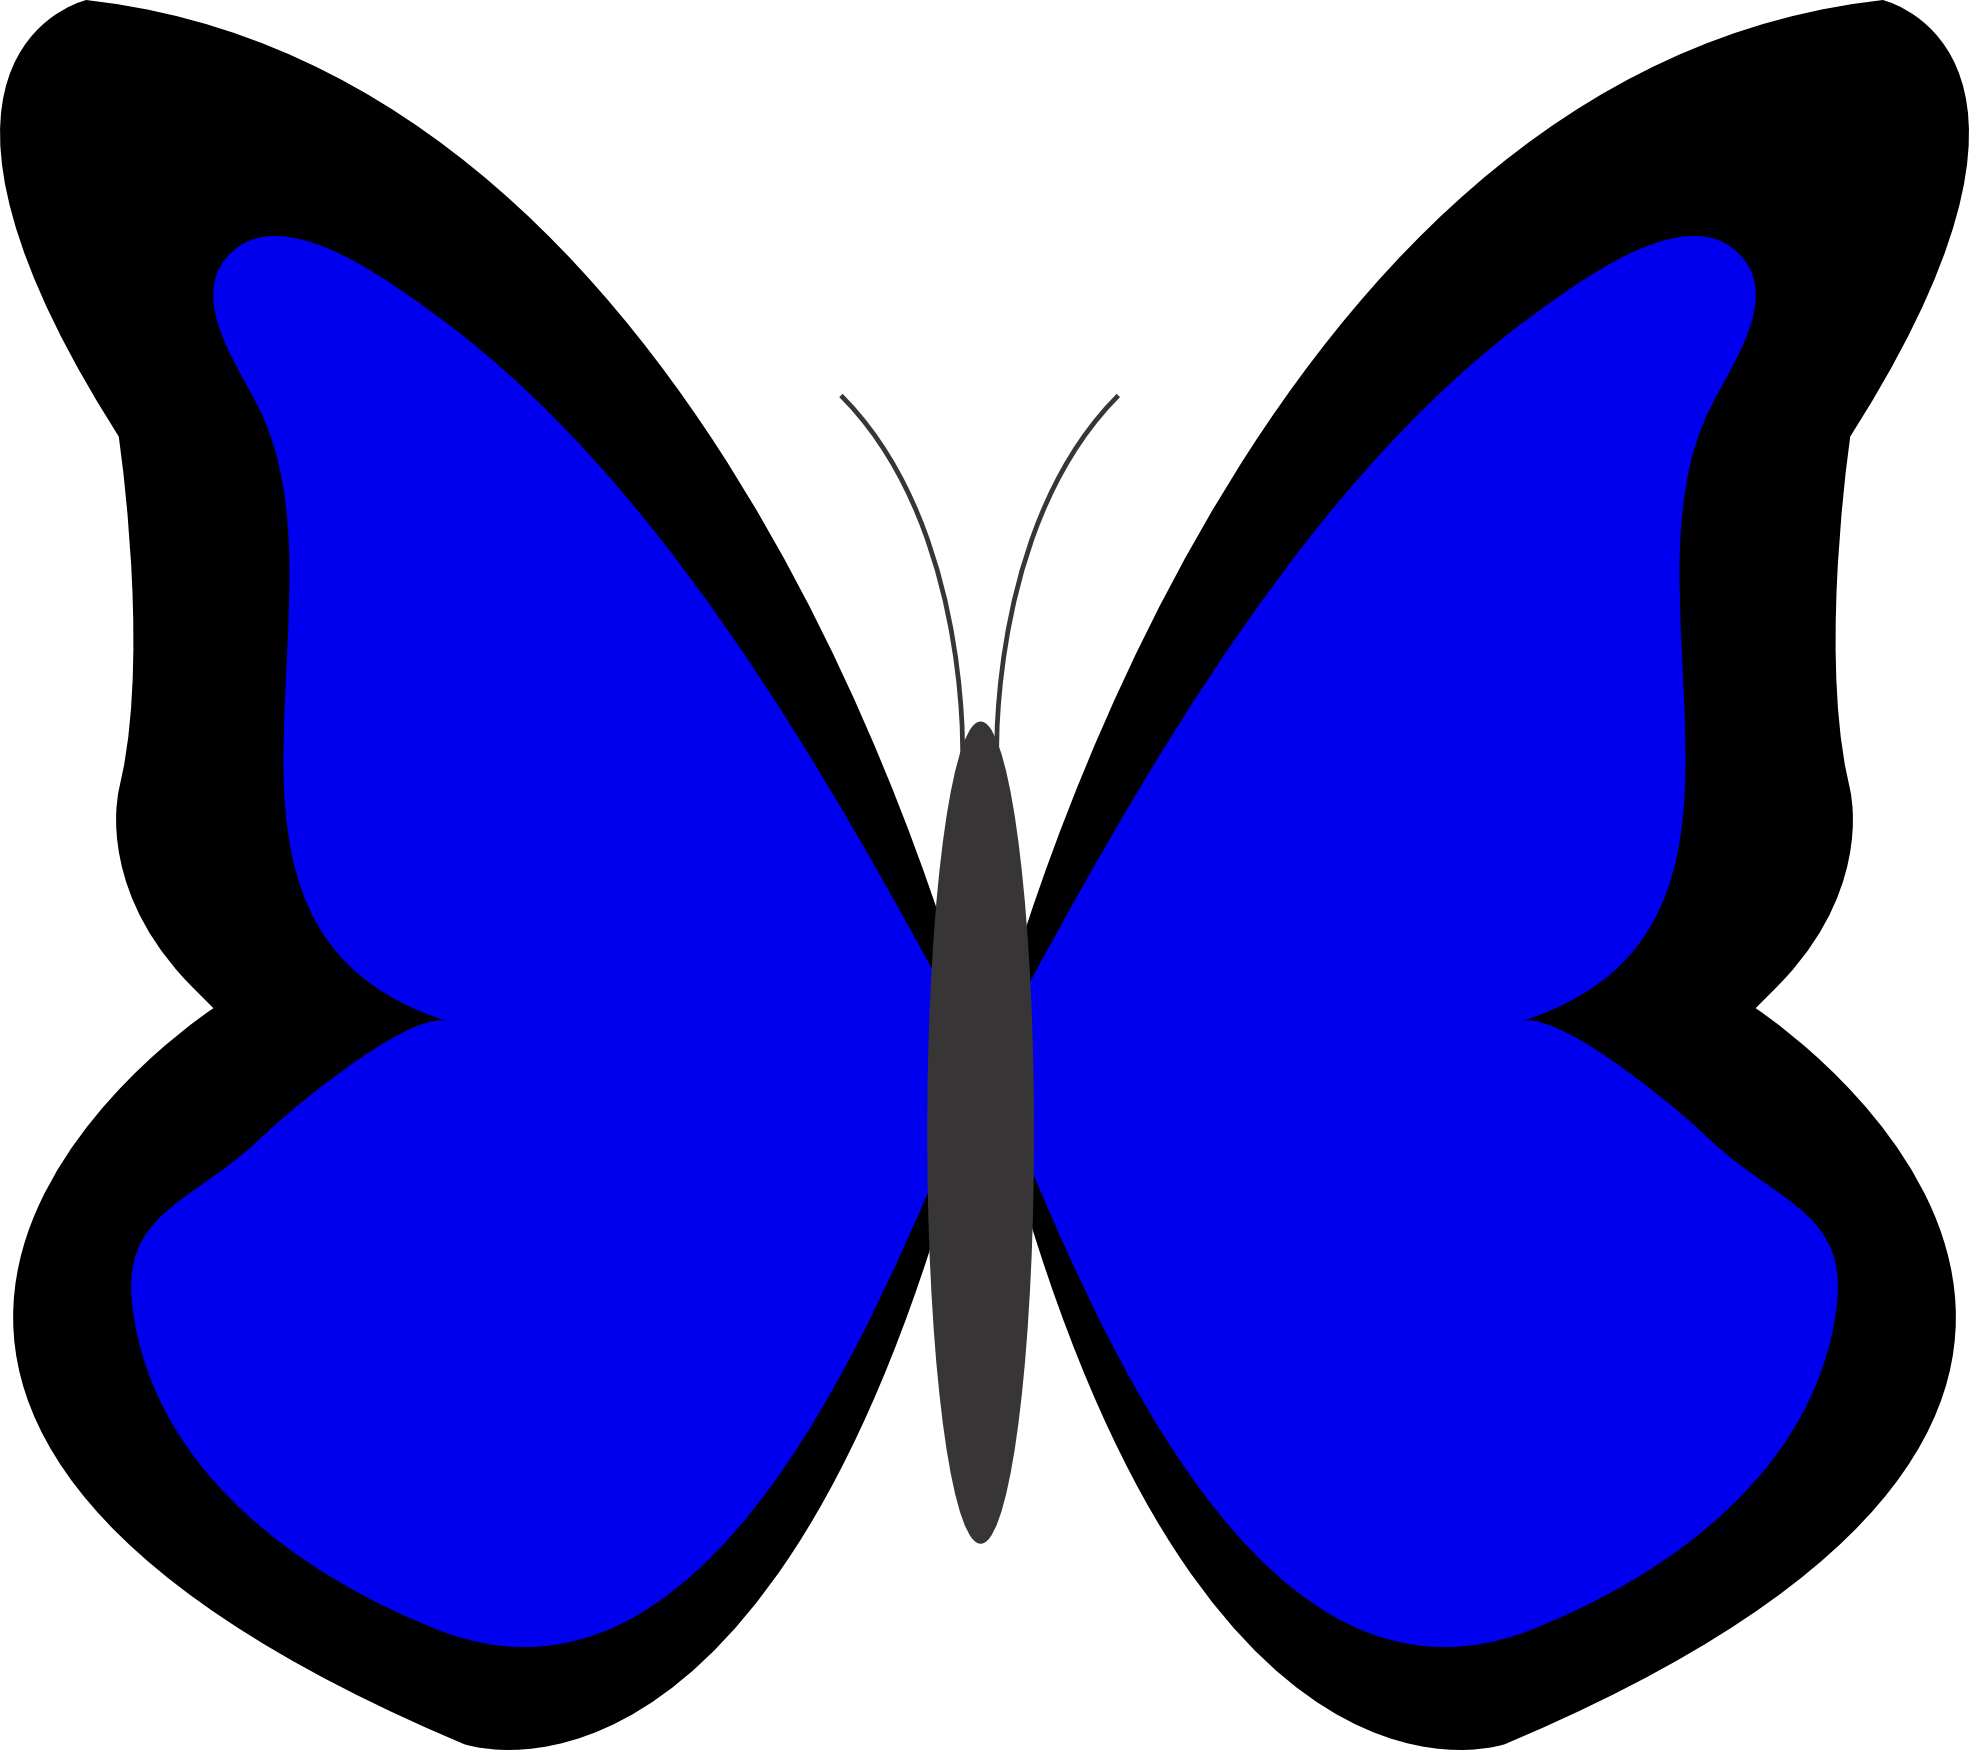 blue butterfly clipart clipart panda free clipart images rh clipartpanda com blue butterfly clipart border blue morpho butterfly clipart